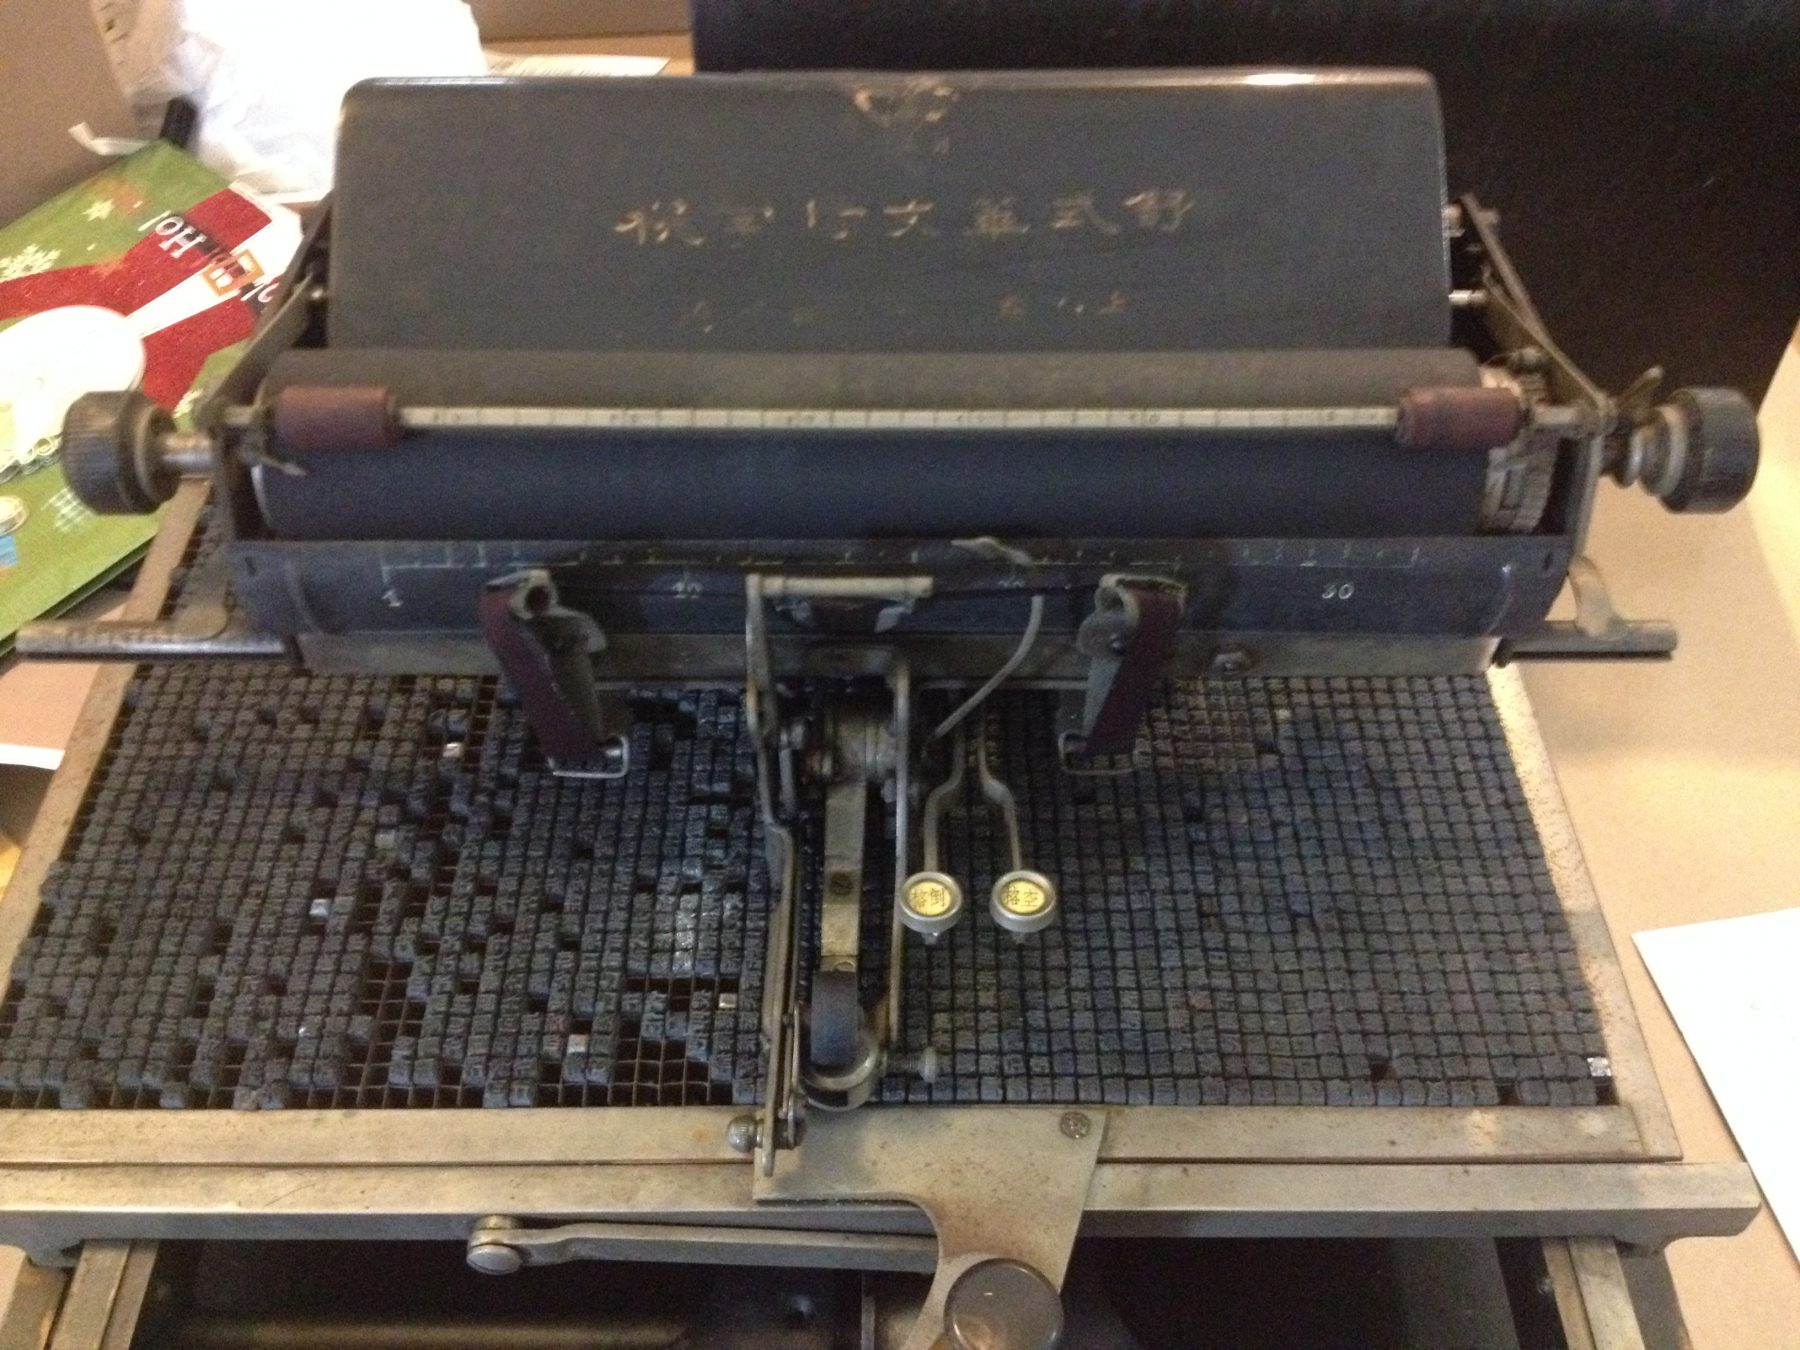 30 August 2019 Posted. Chinese typewriter, Courtesy of David and Lisa Tang--In memory of Ho Poy Sing, Museum of Chinese in America (MOCA) Collection. 舒式华文打字机,David and Lisa Tang捐赠,纪念Ho Poy Sing,美国华人博物馆(MOCA)馆藏